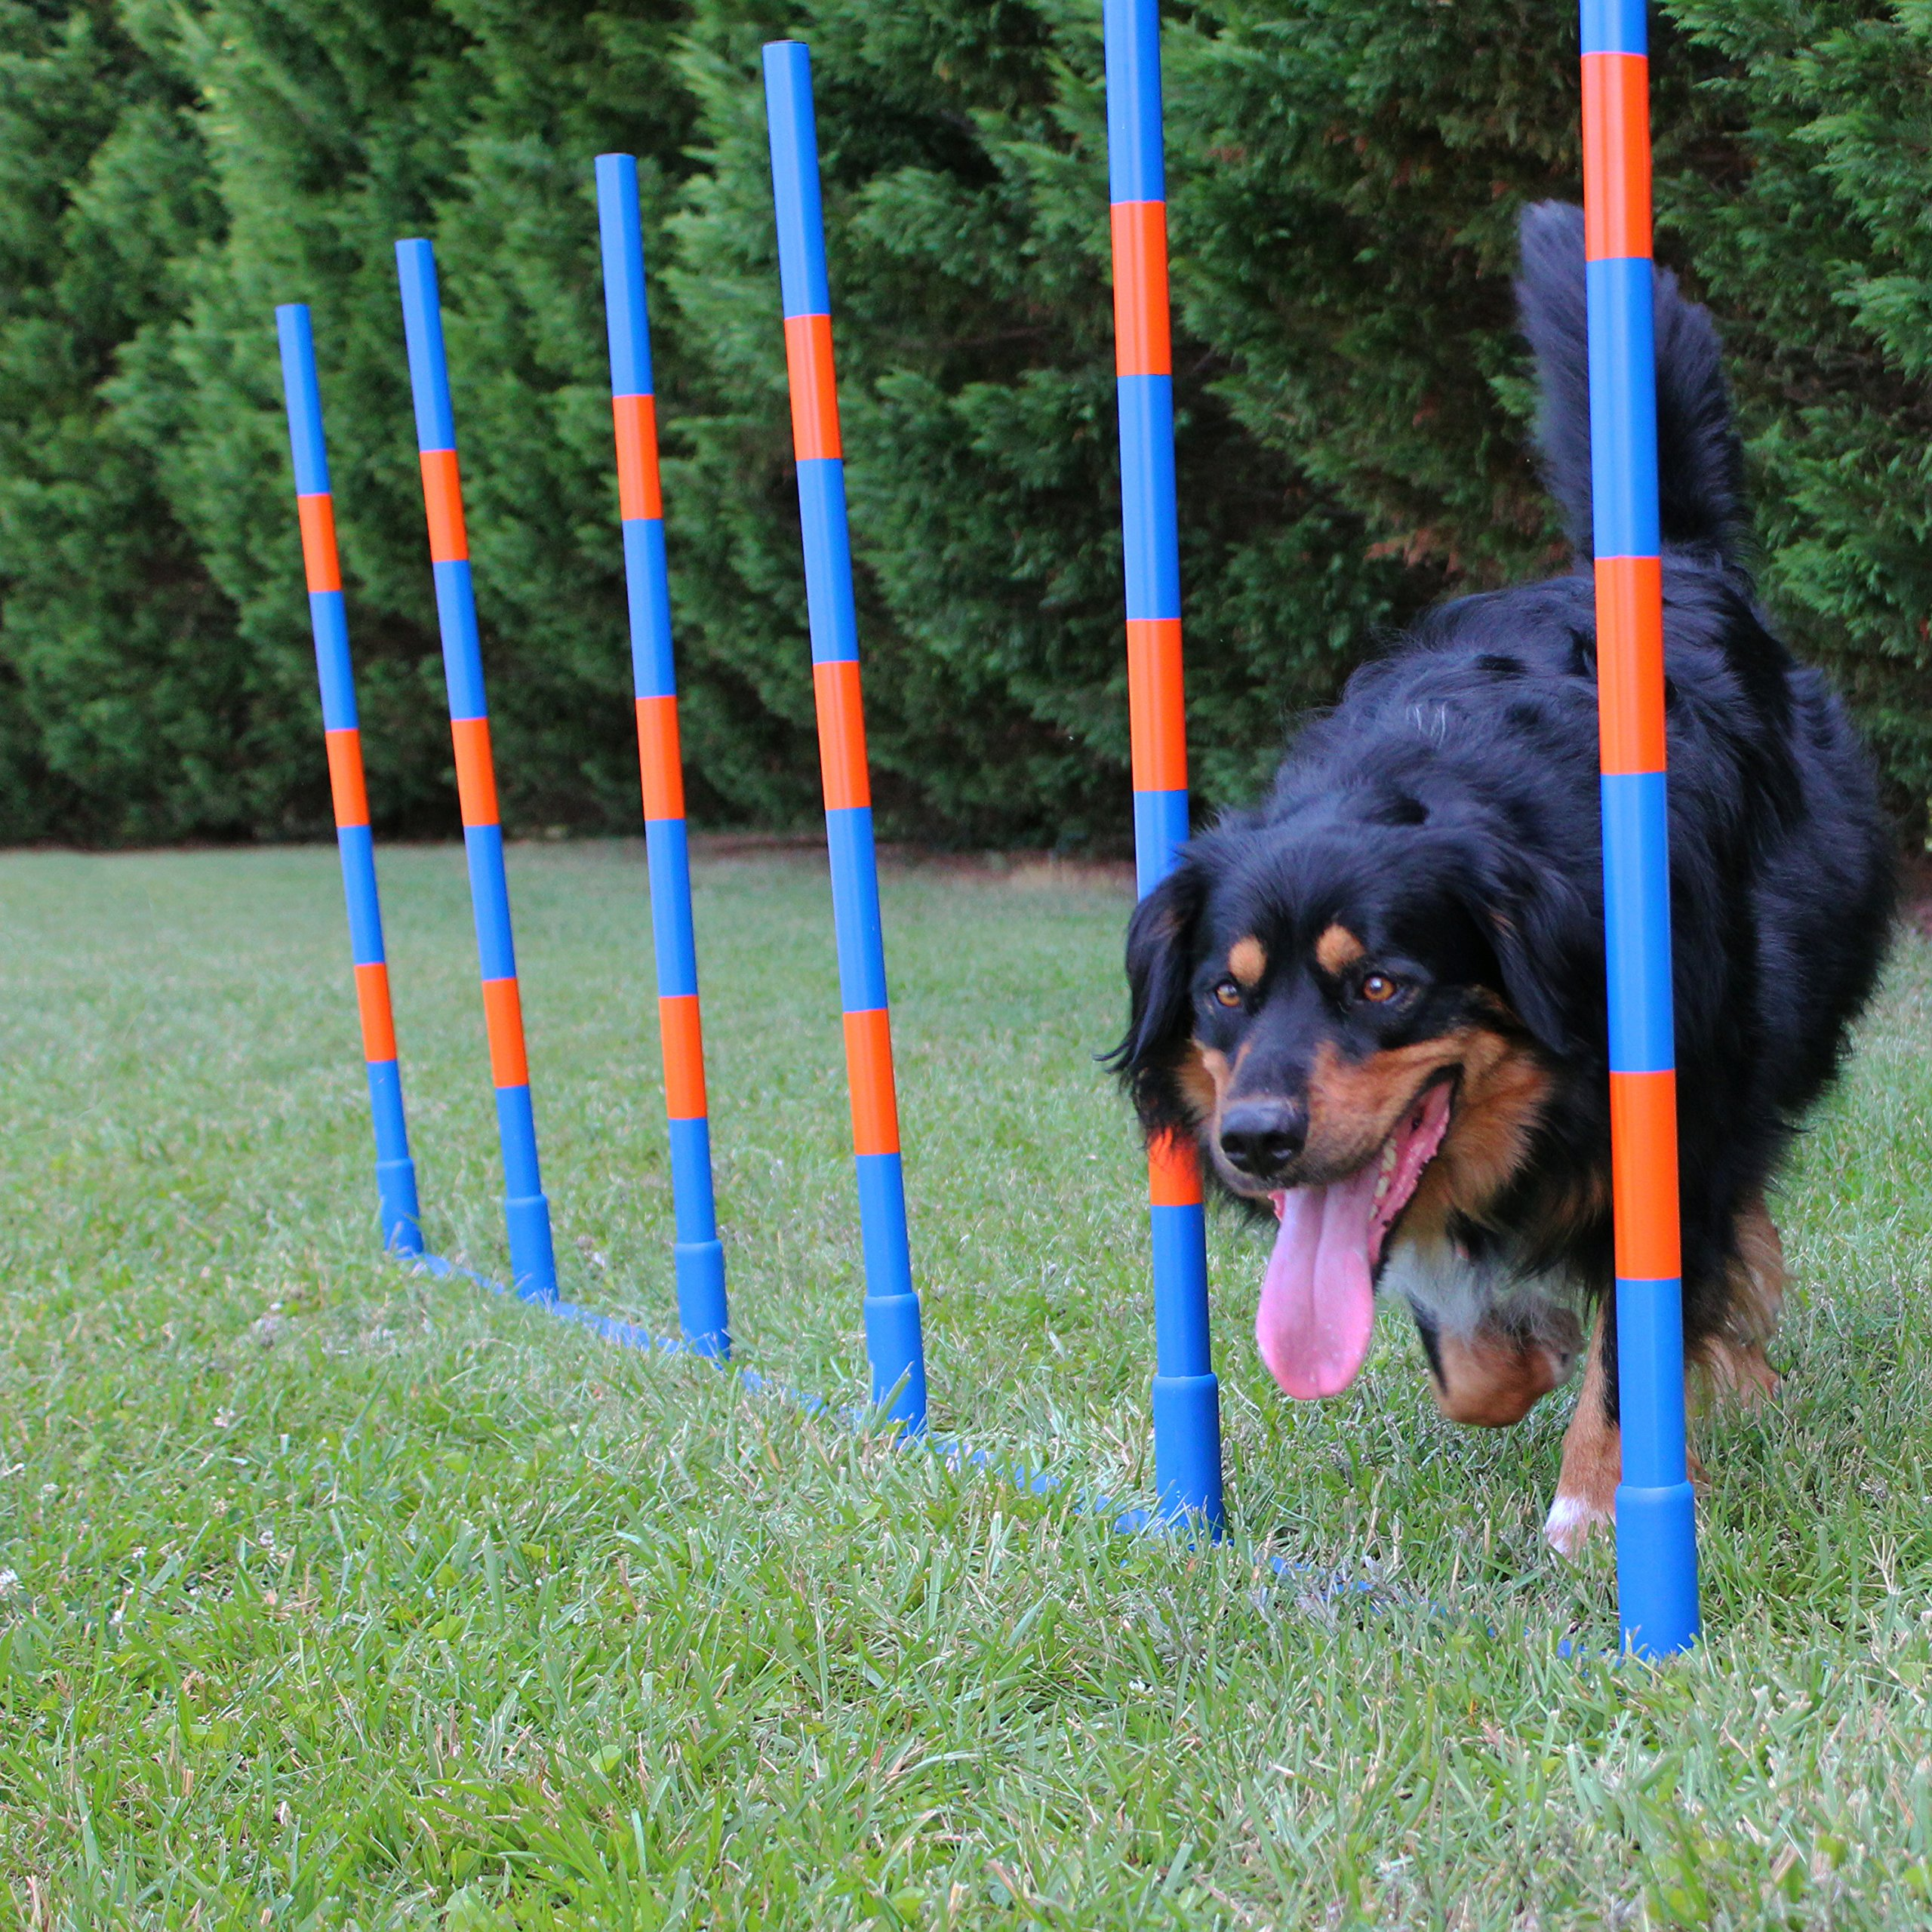 Lord Anson Dog Agility Weave Poles - Competition Grade Adjustable Agility Weave Pole Set - Dog Agility Equipment Set - 6 Weave Pole Set w/Carrying Case by Lord Anson